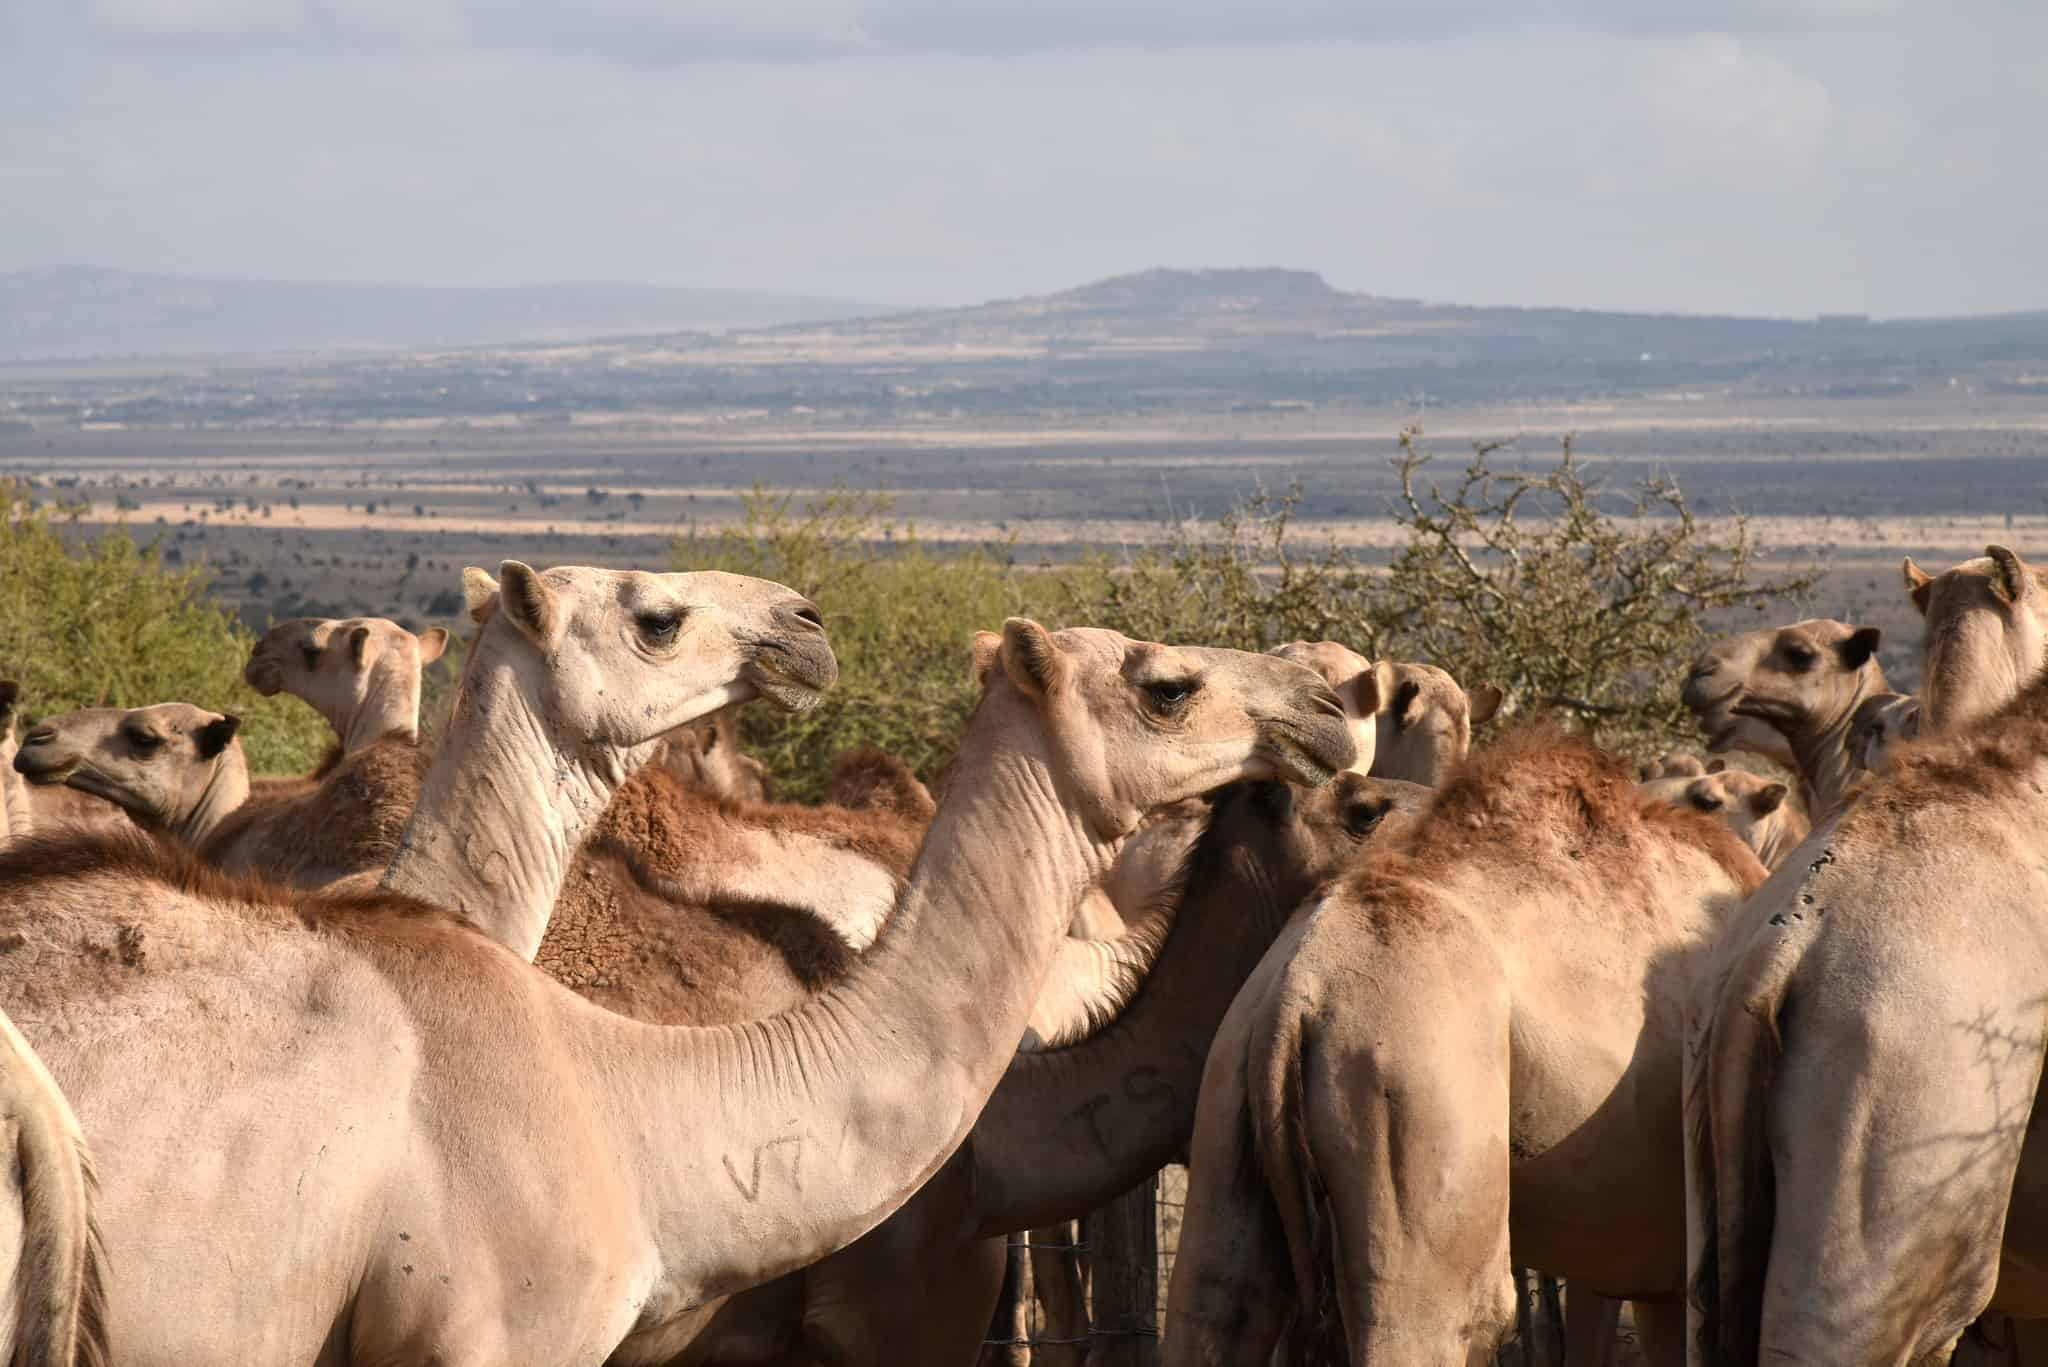 Camels in Kapiti, Kenya (photo credit: ILRI/Paul Karaimu).